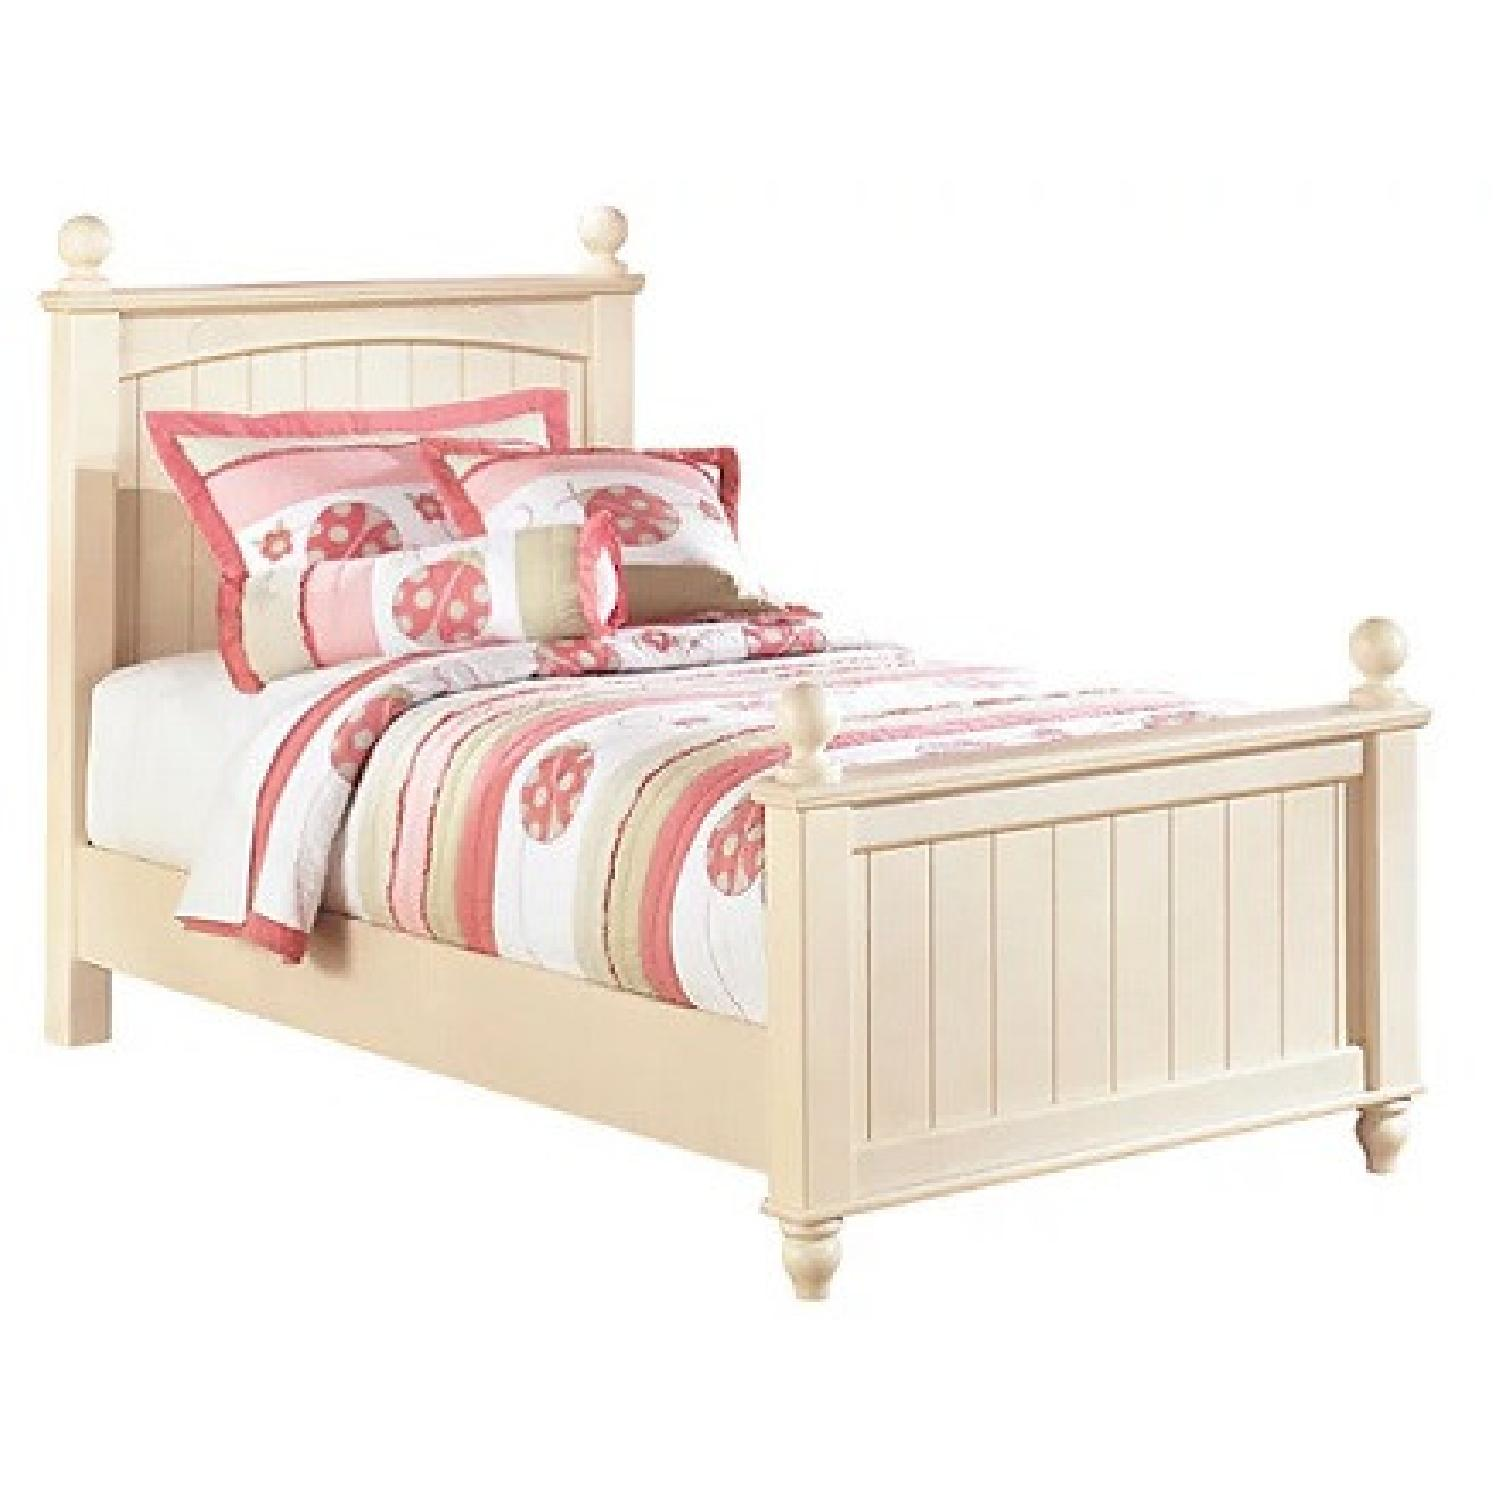 Ashely Furniture Twin Bed Frame - image-5